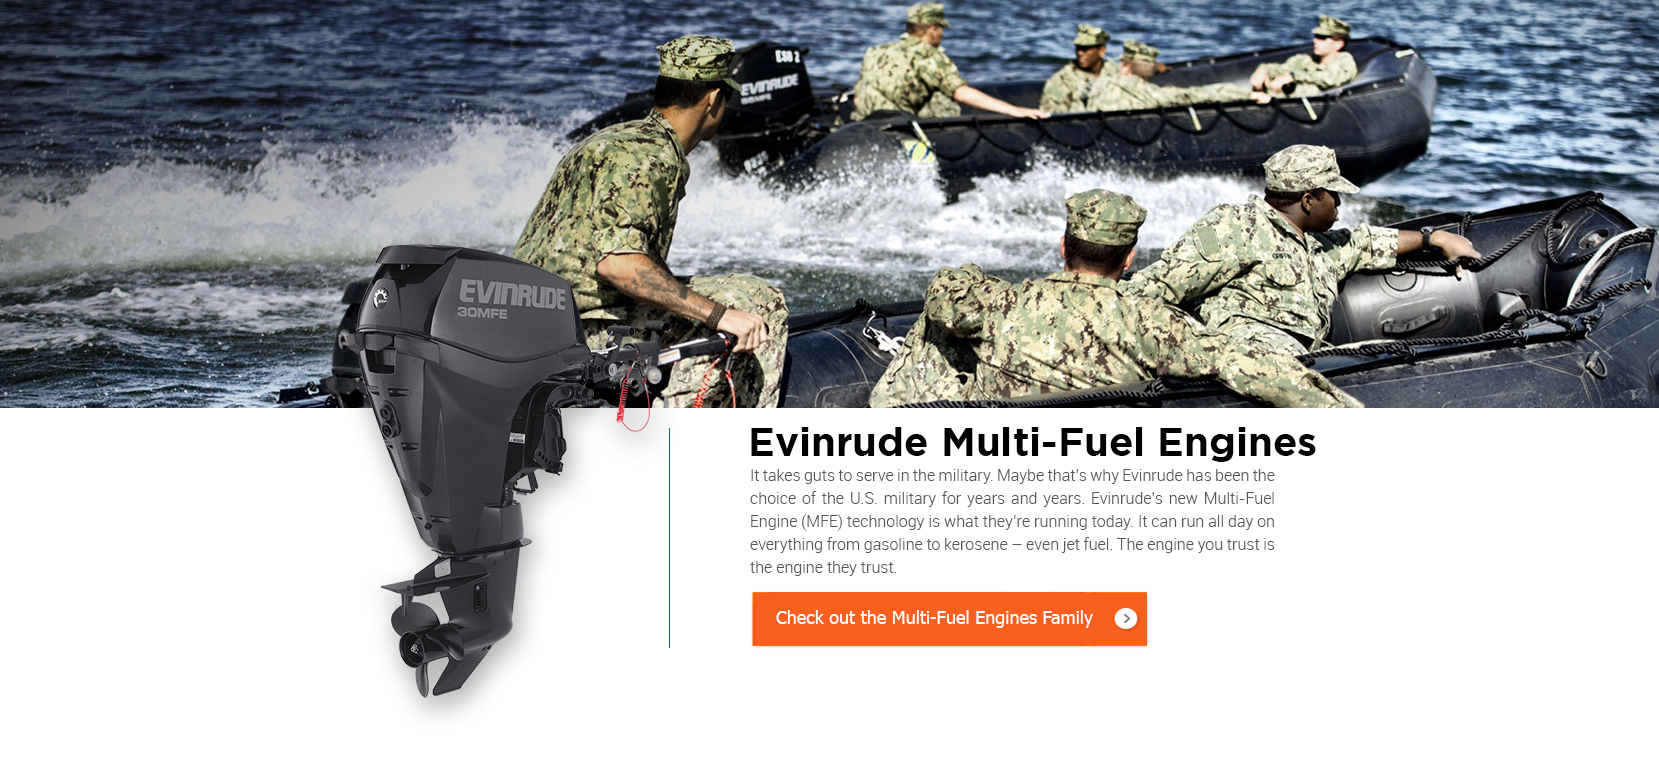 Evinrude Outboard | Nautical Ventures